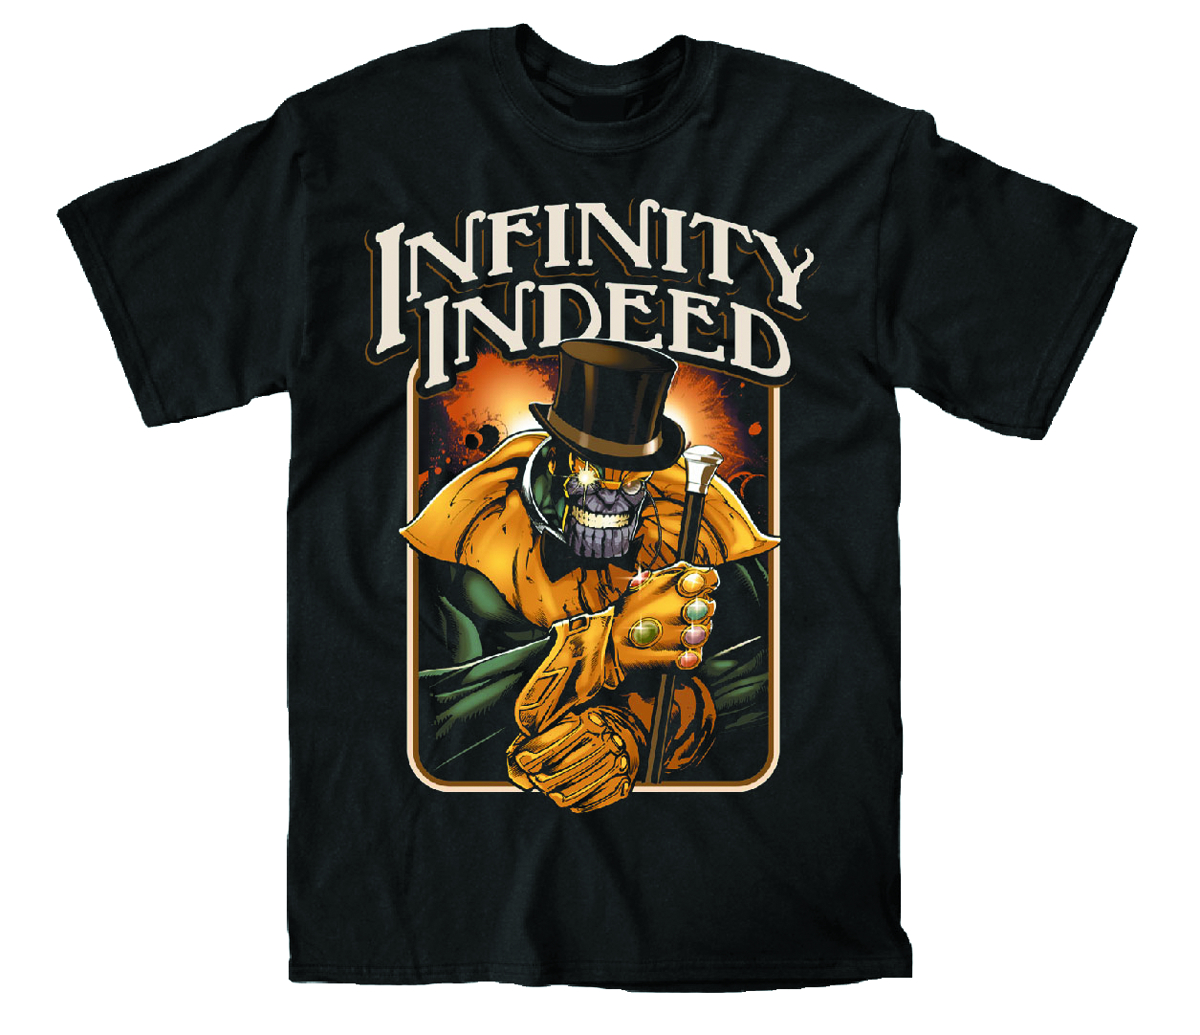 THANOS INFINITY INDEED PX BLK T/S LG